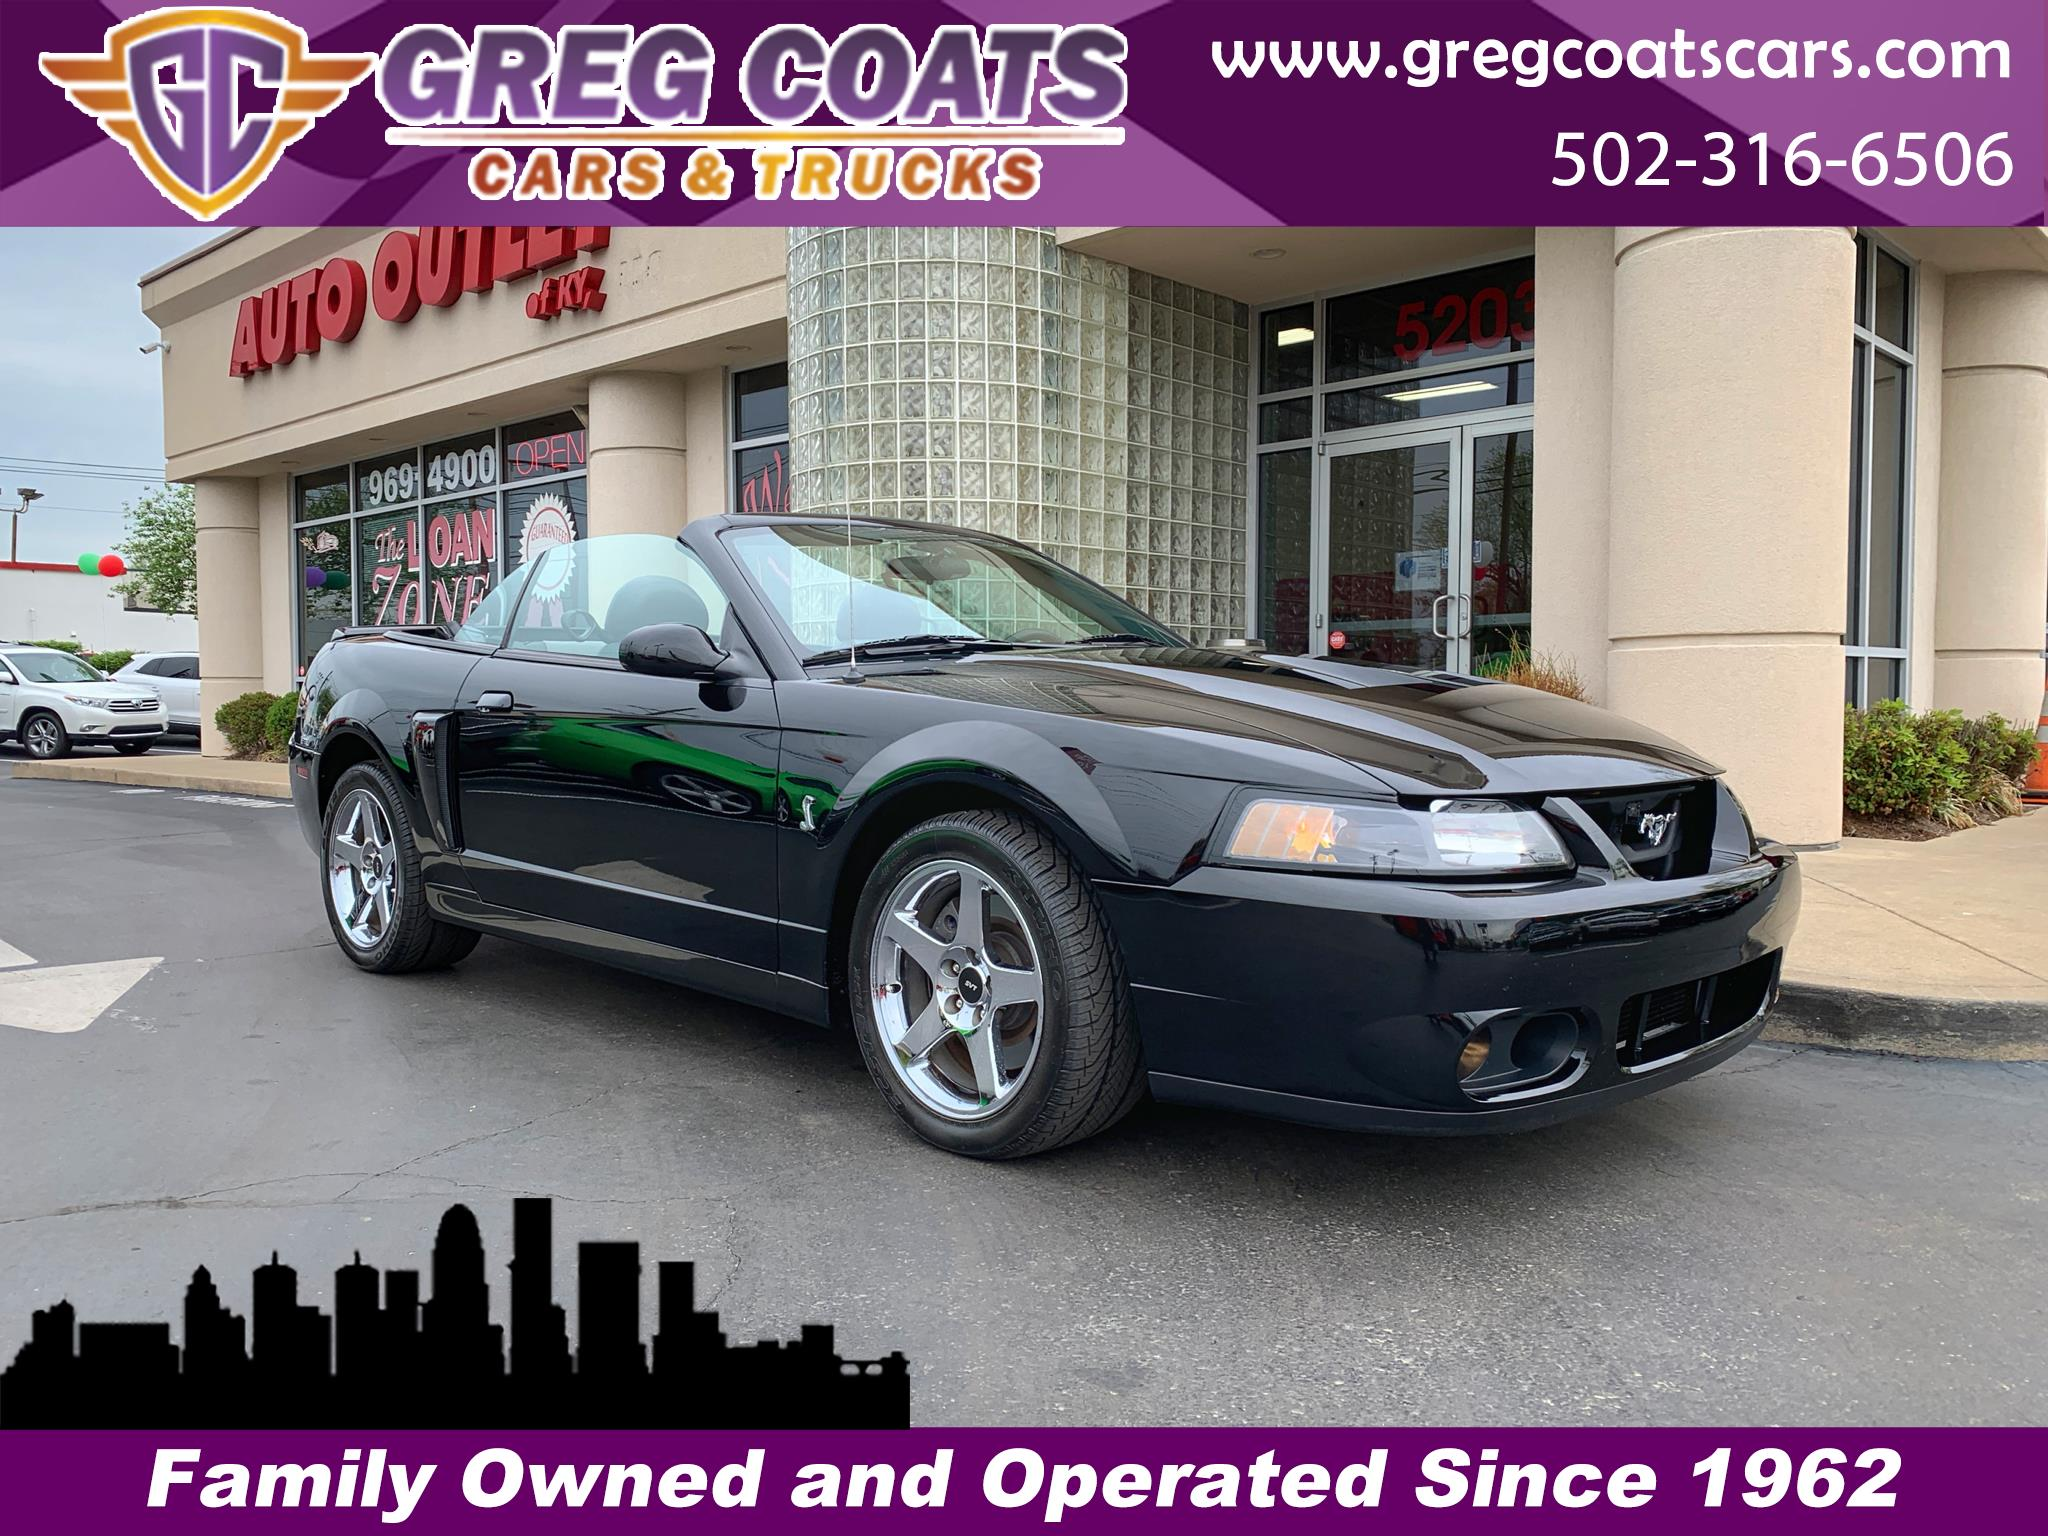 Ford Mustang SVT Cobra Convertible 2004